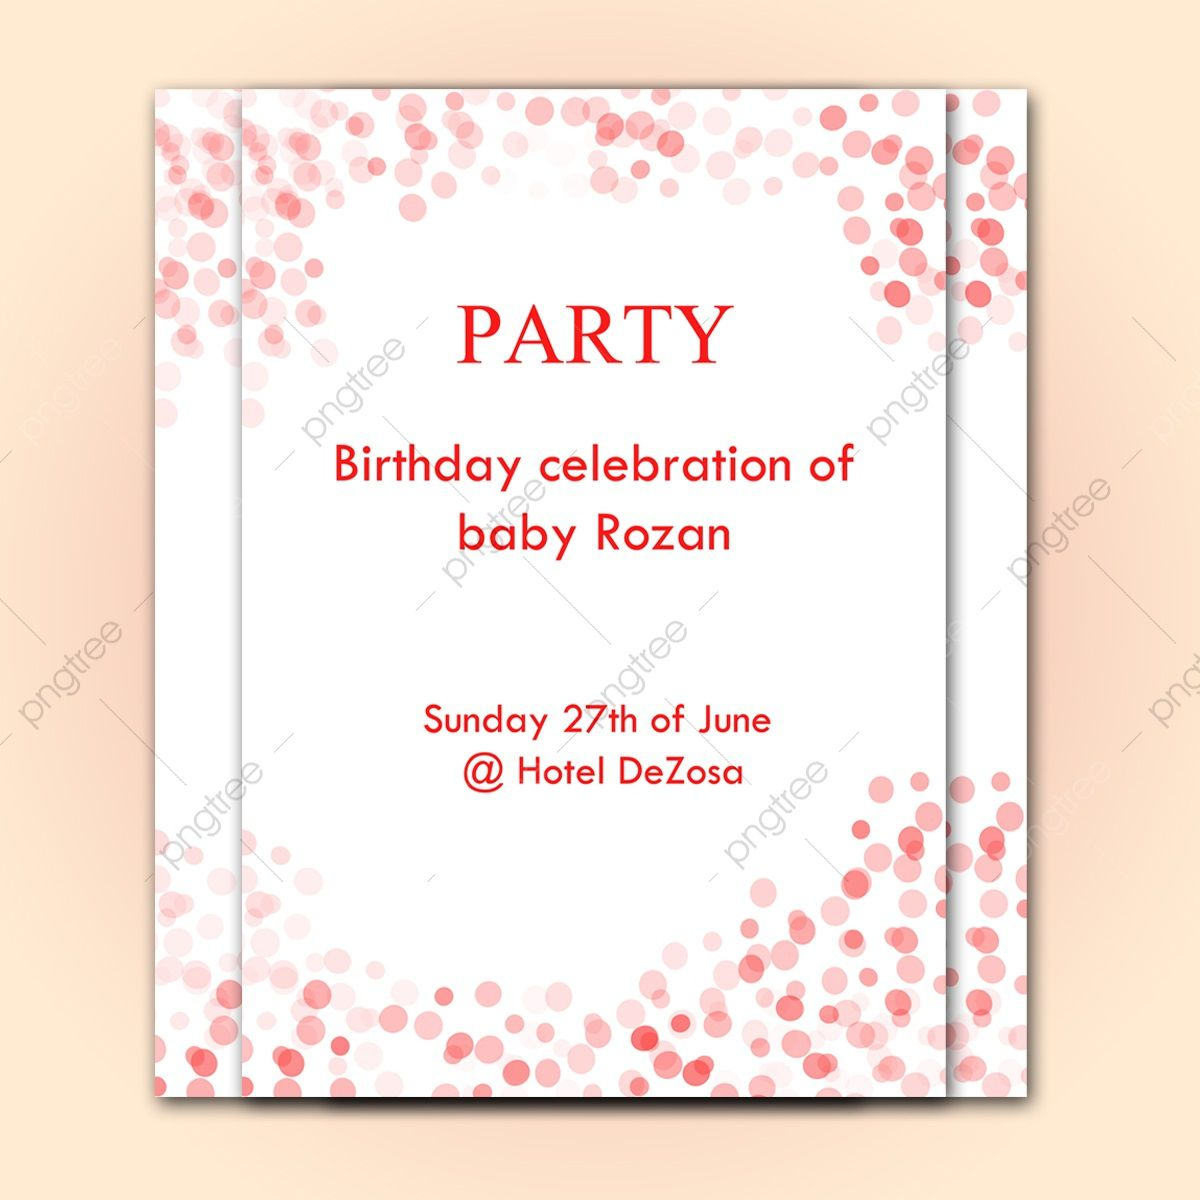 009 Stunning Birthday Party Invitation Flyer Template Free Download High Resolution Full